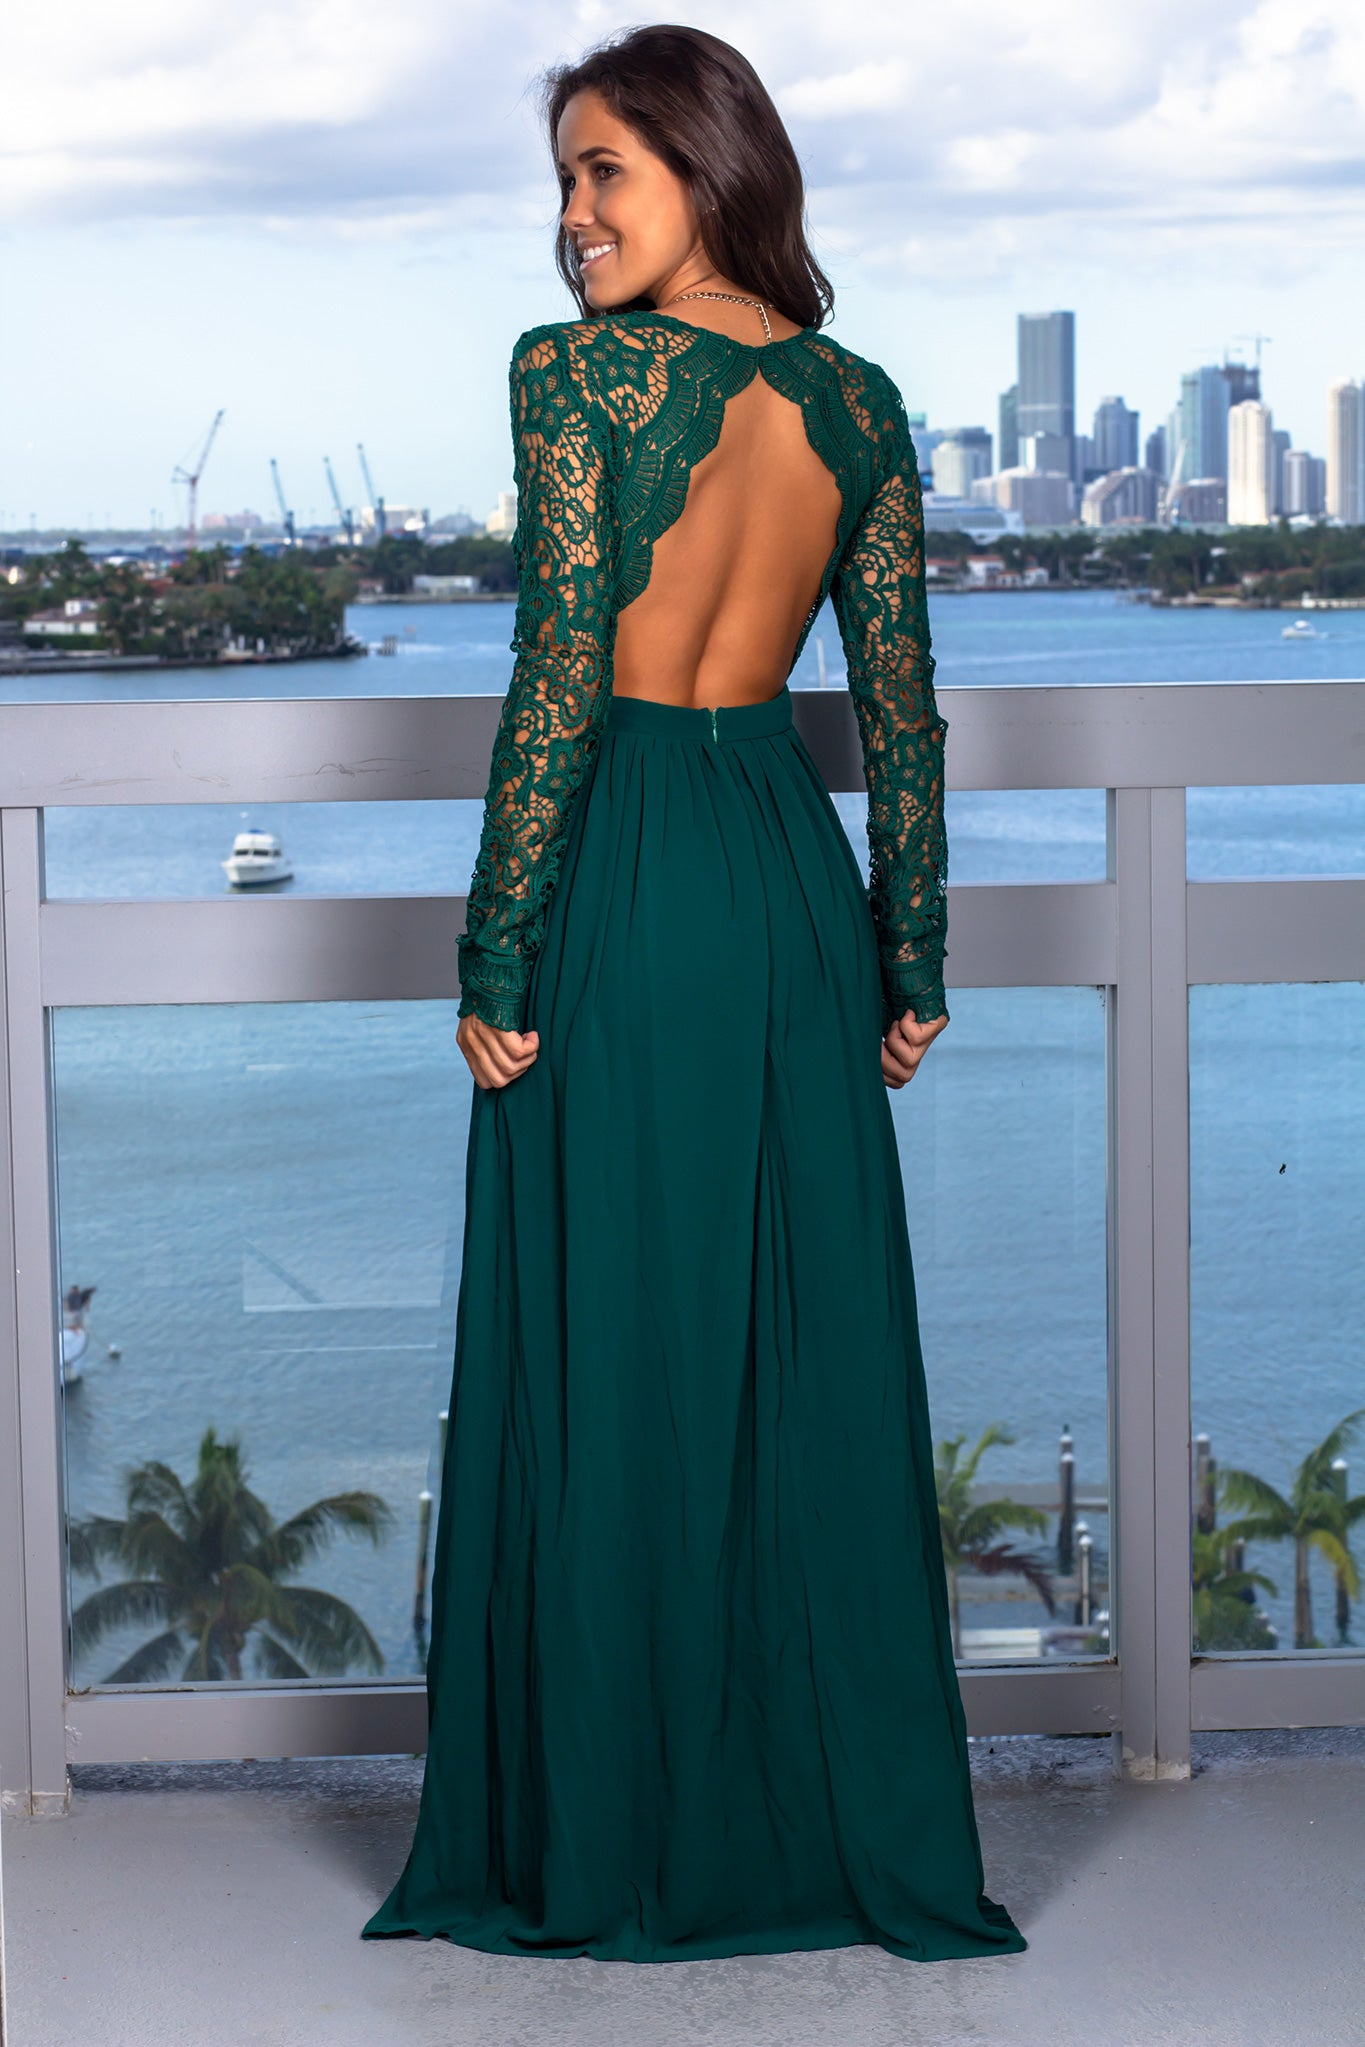 Hunter Green Crochet Maxi Dress with Open Back